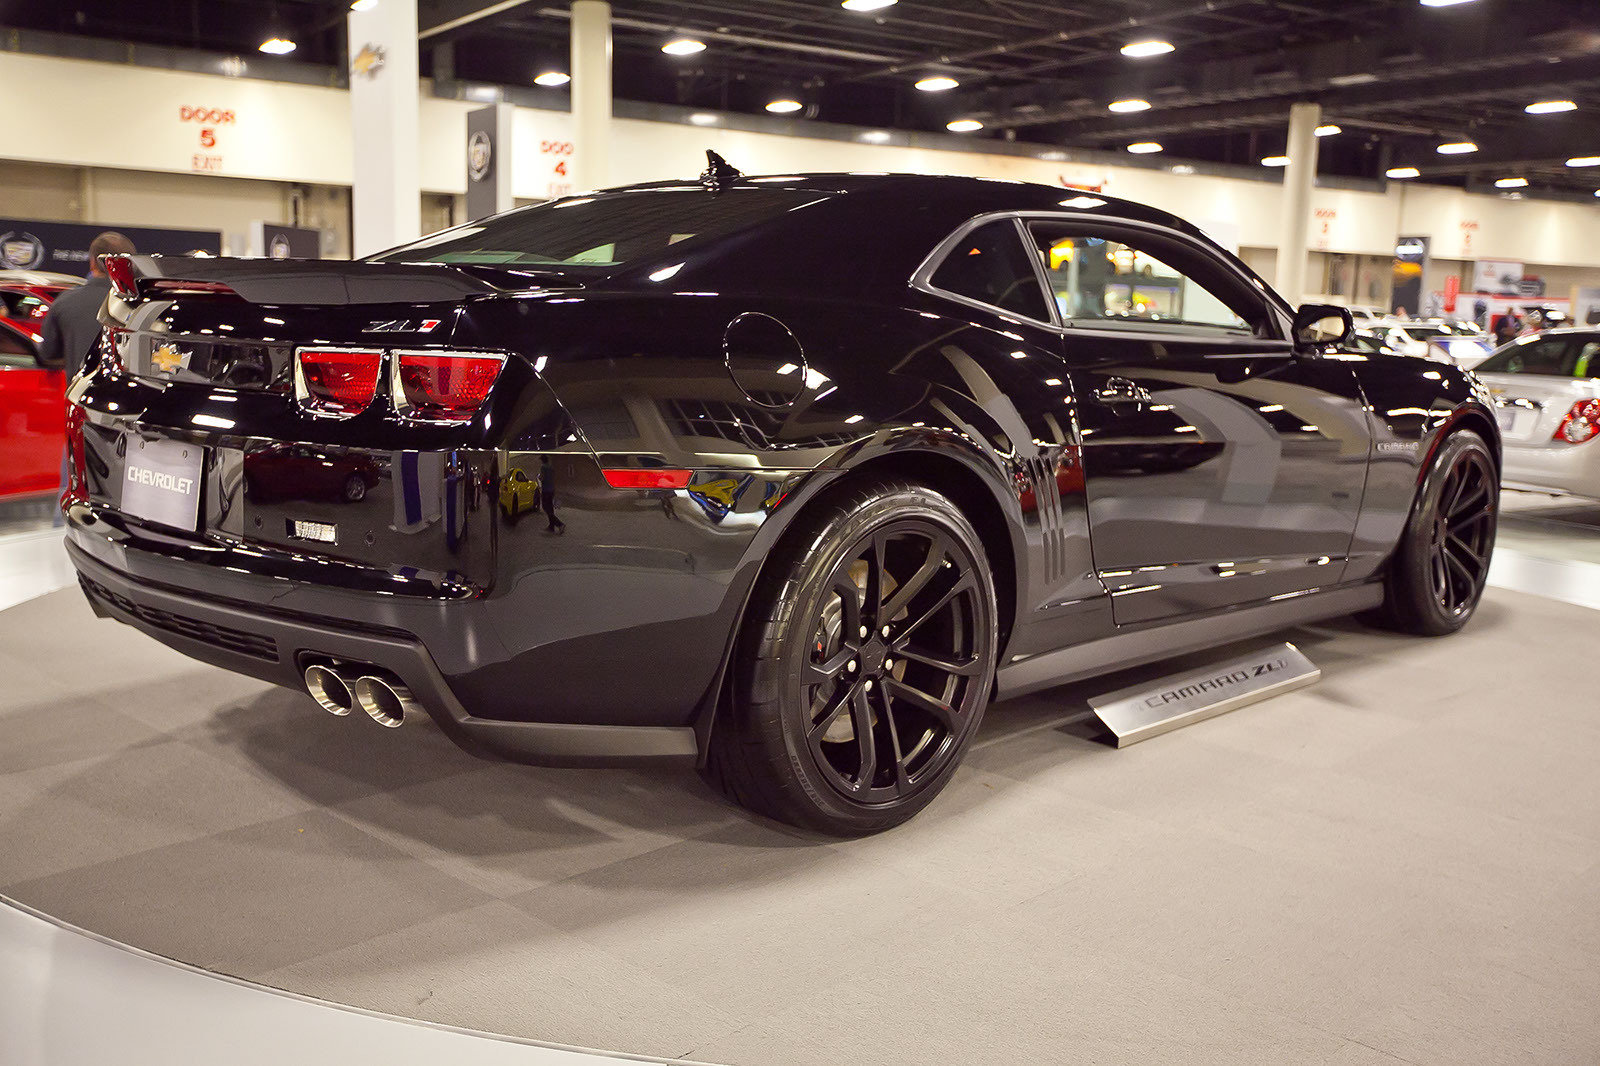 2012 2013 Chevrolet Camaro Zl1 Picture 442605 Car